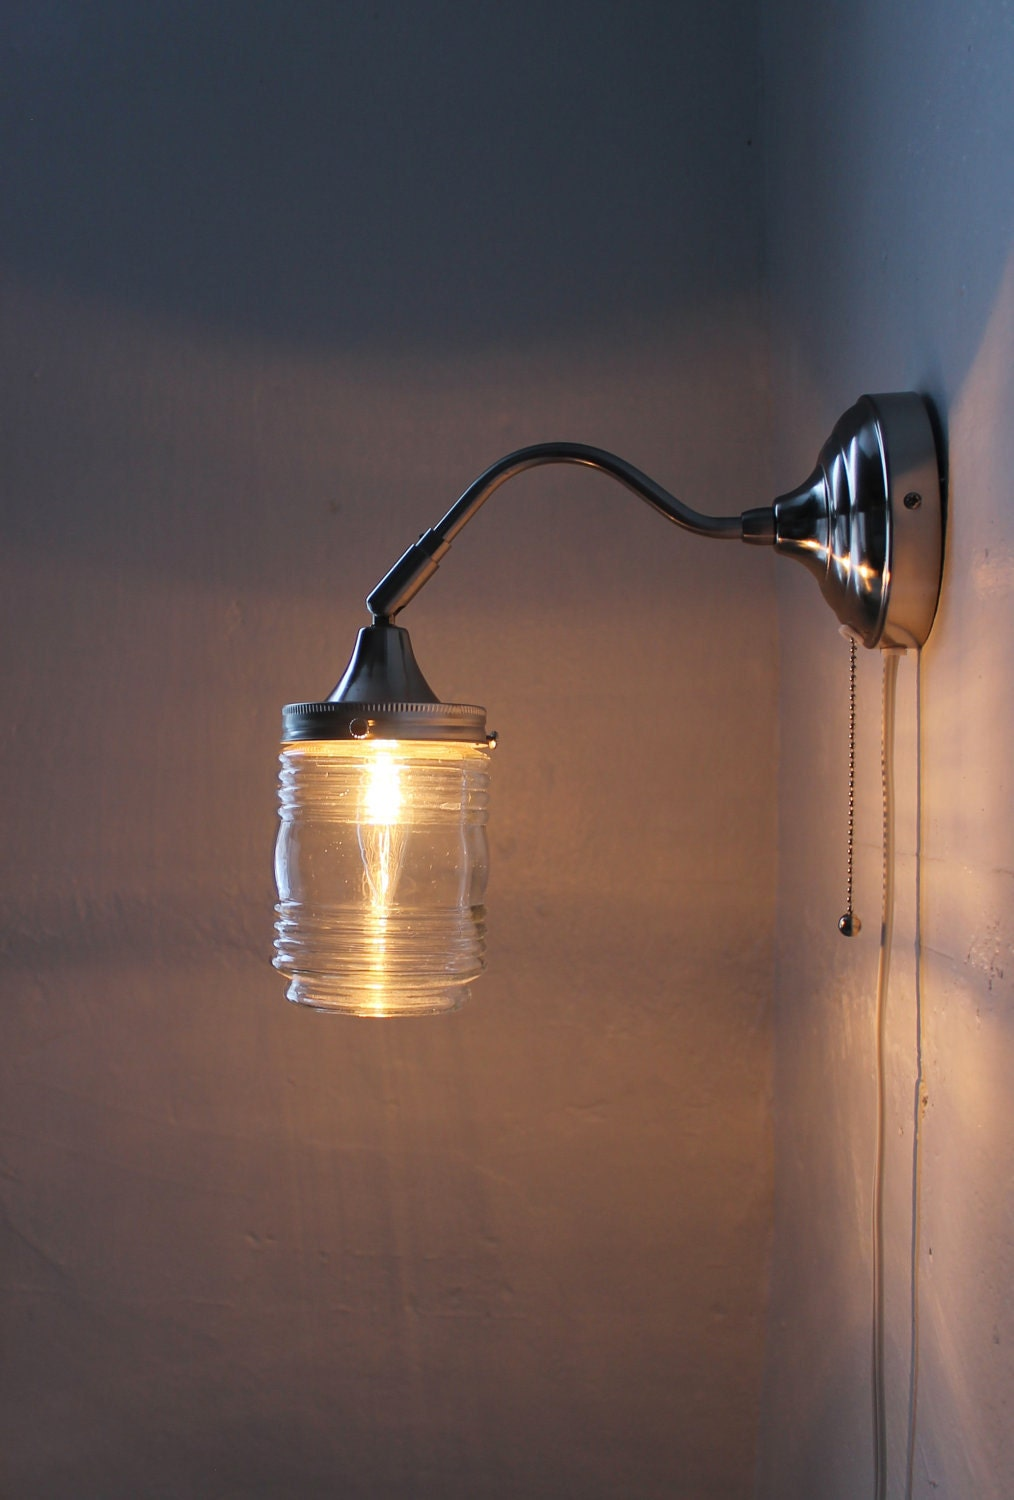 City lights gooseneck wall sconce lamp industrial stainless - Gooseneck wall sconce ...